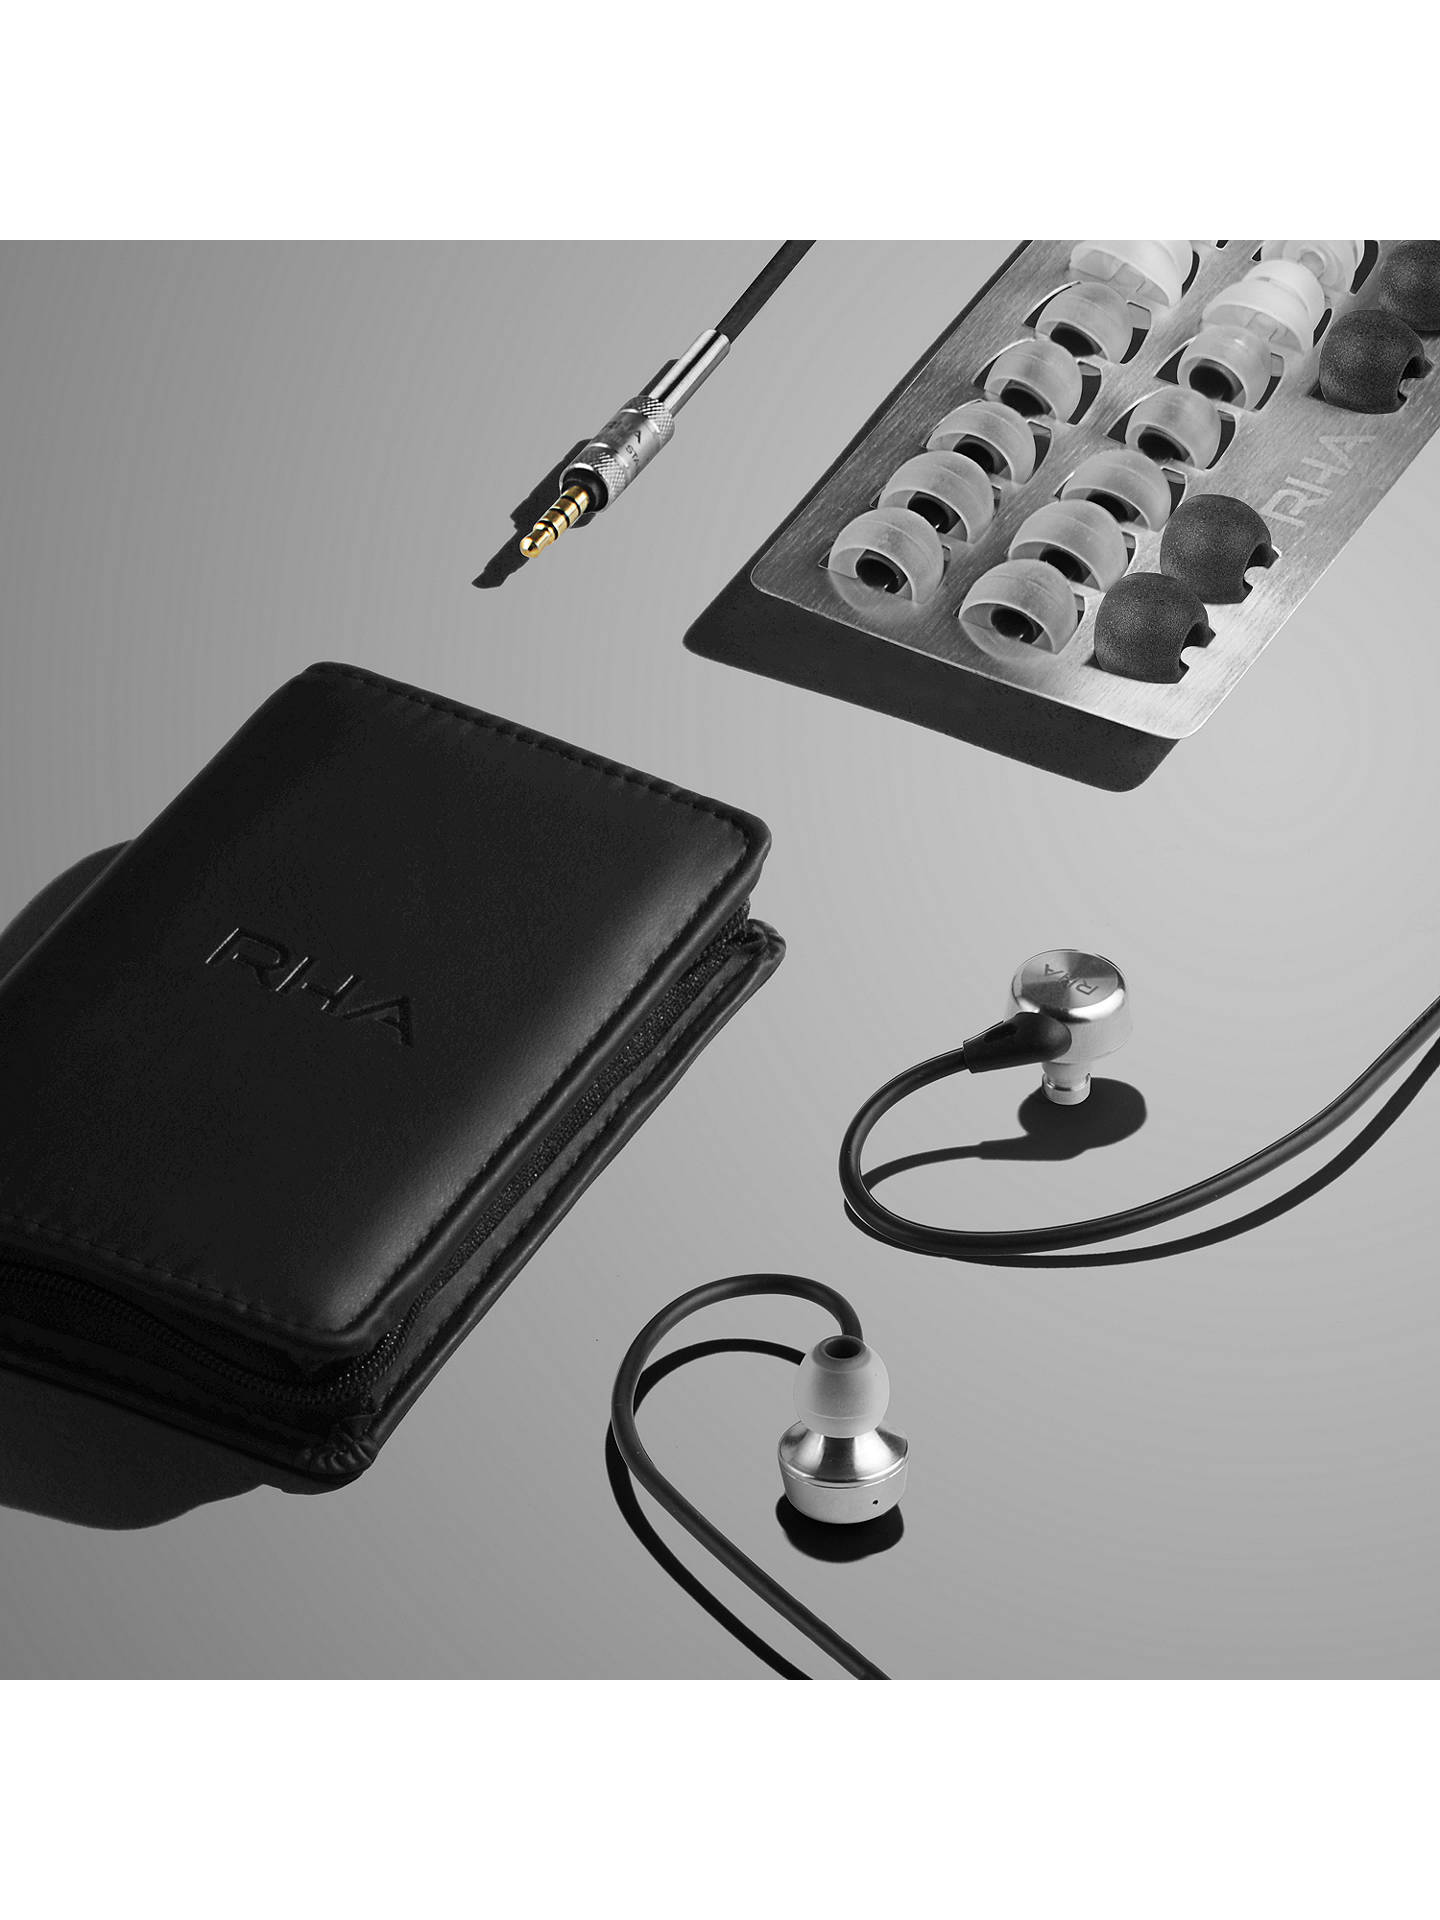 BuyRHA MA750i In-Ear Headphones with High Resolution Audio & Mic/Remote for iOS, Black Online at johnlewis.com